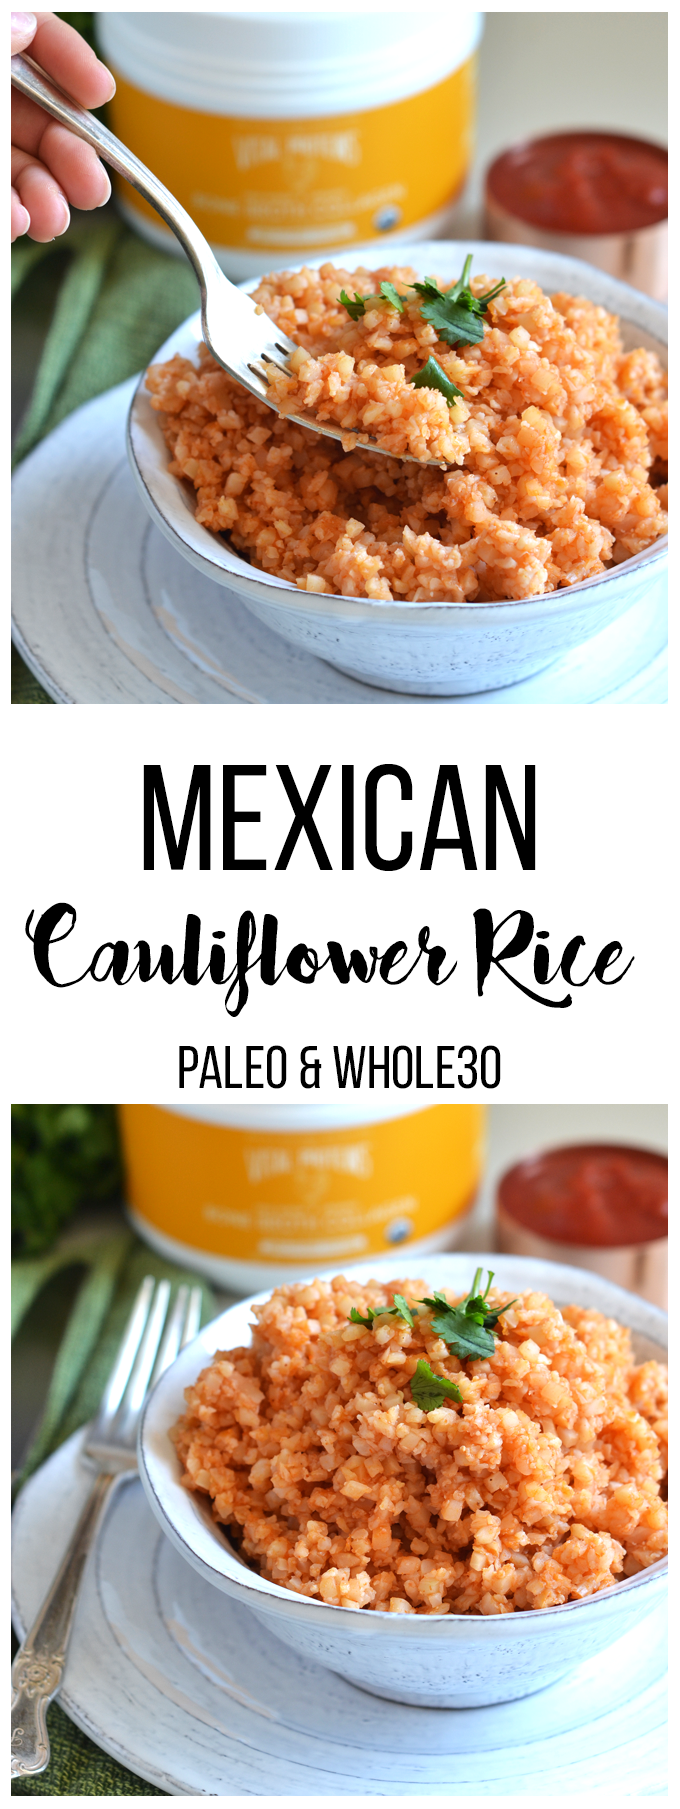 This Mexican Cauliflower Rice is the perfect way to enjoy the authentic mexican rice flavors with a healthy and paleo twist!